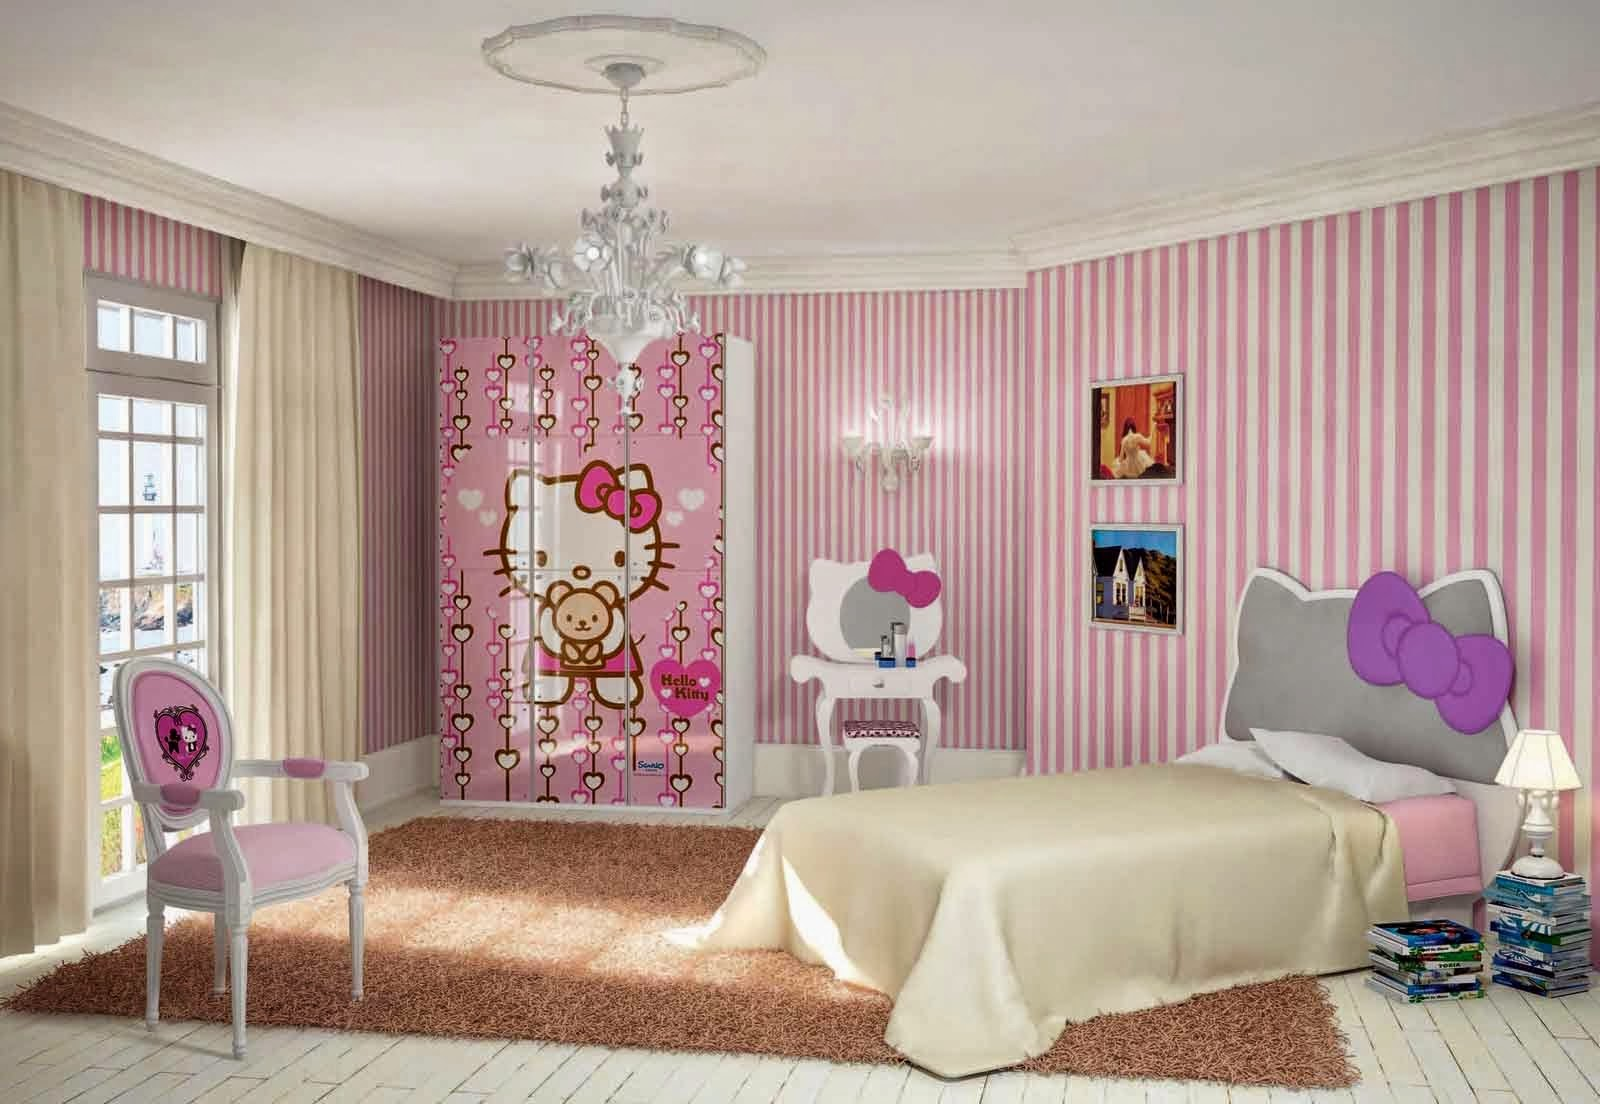 Bedroom interior design hello kitty 2015 home inspirations for Bedroom decoration 2015